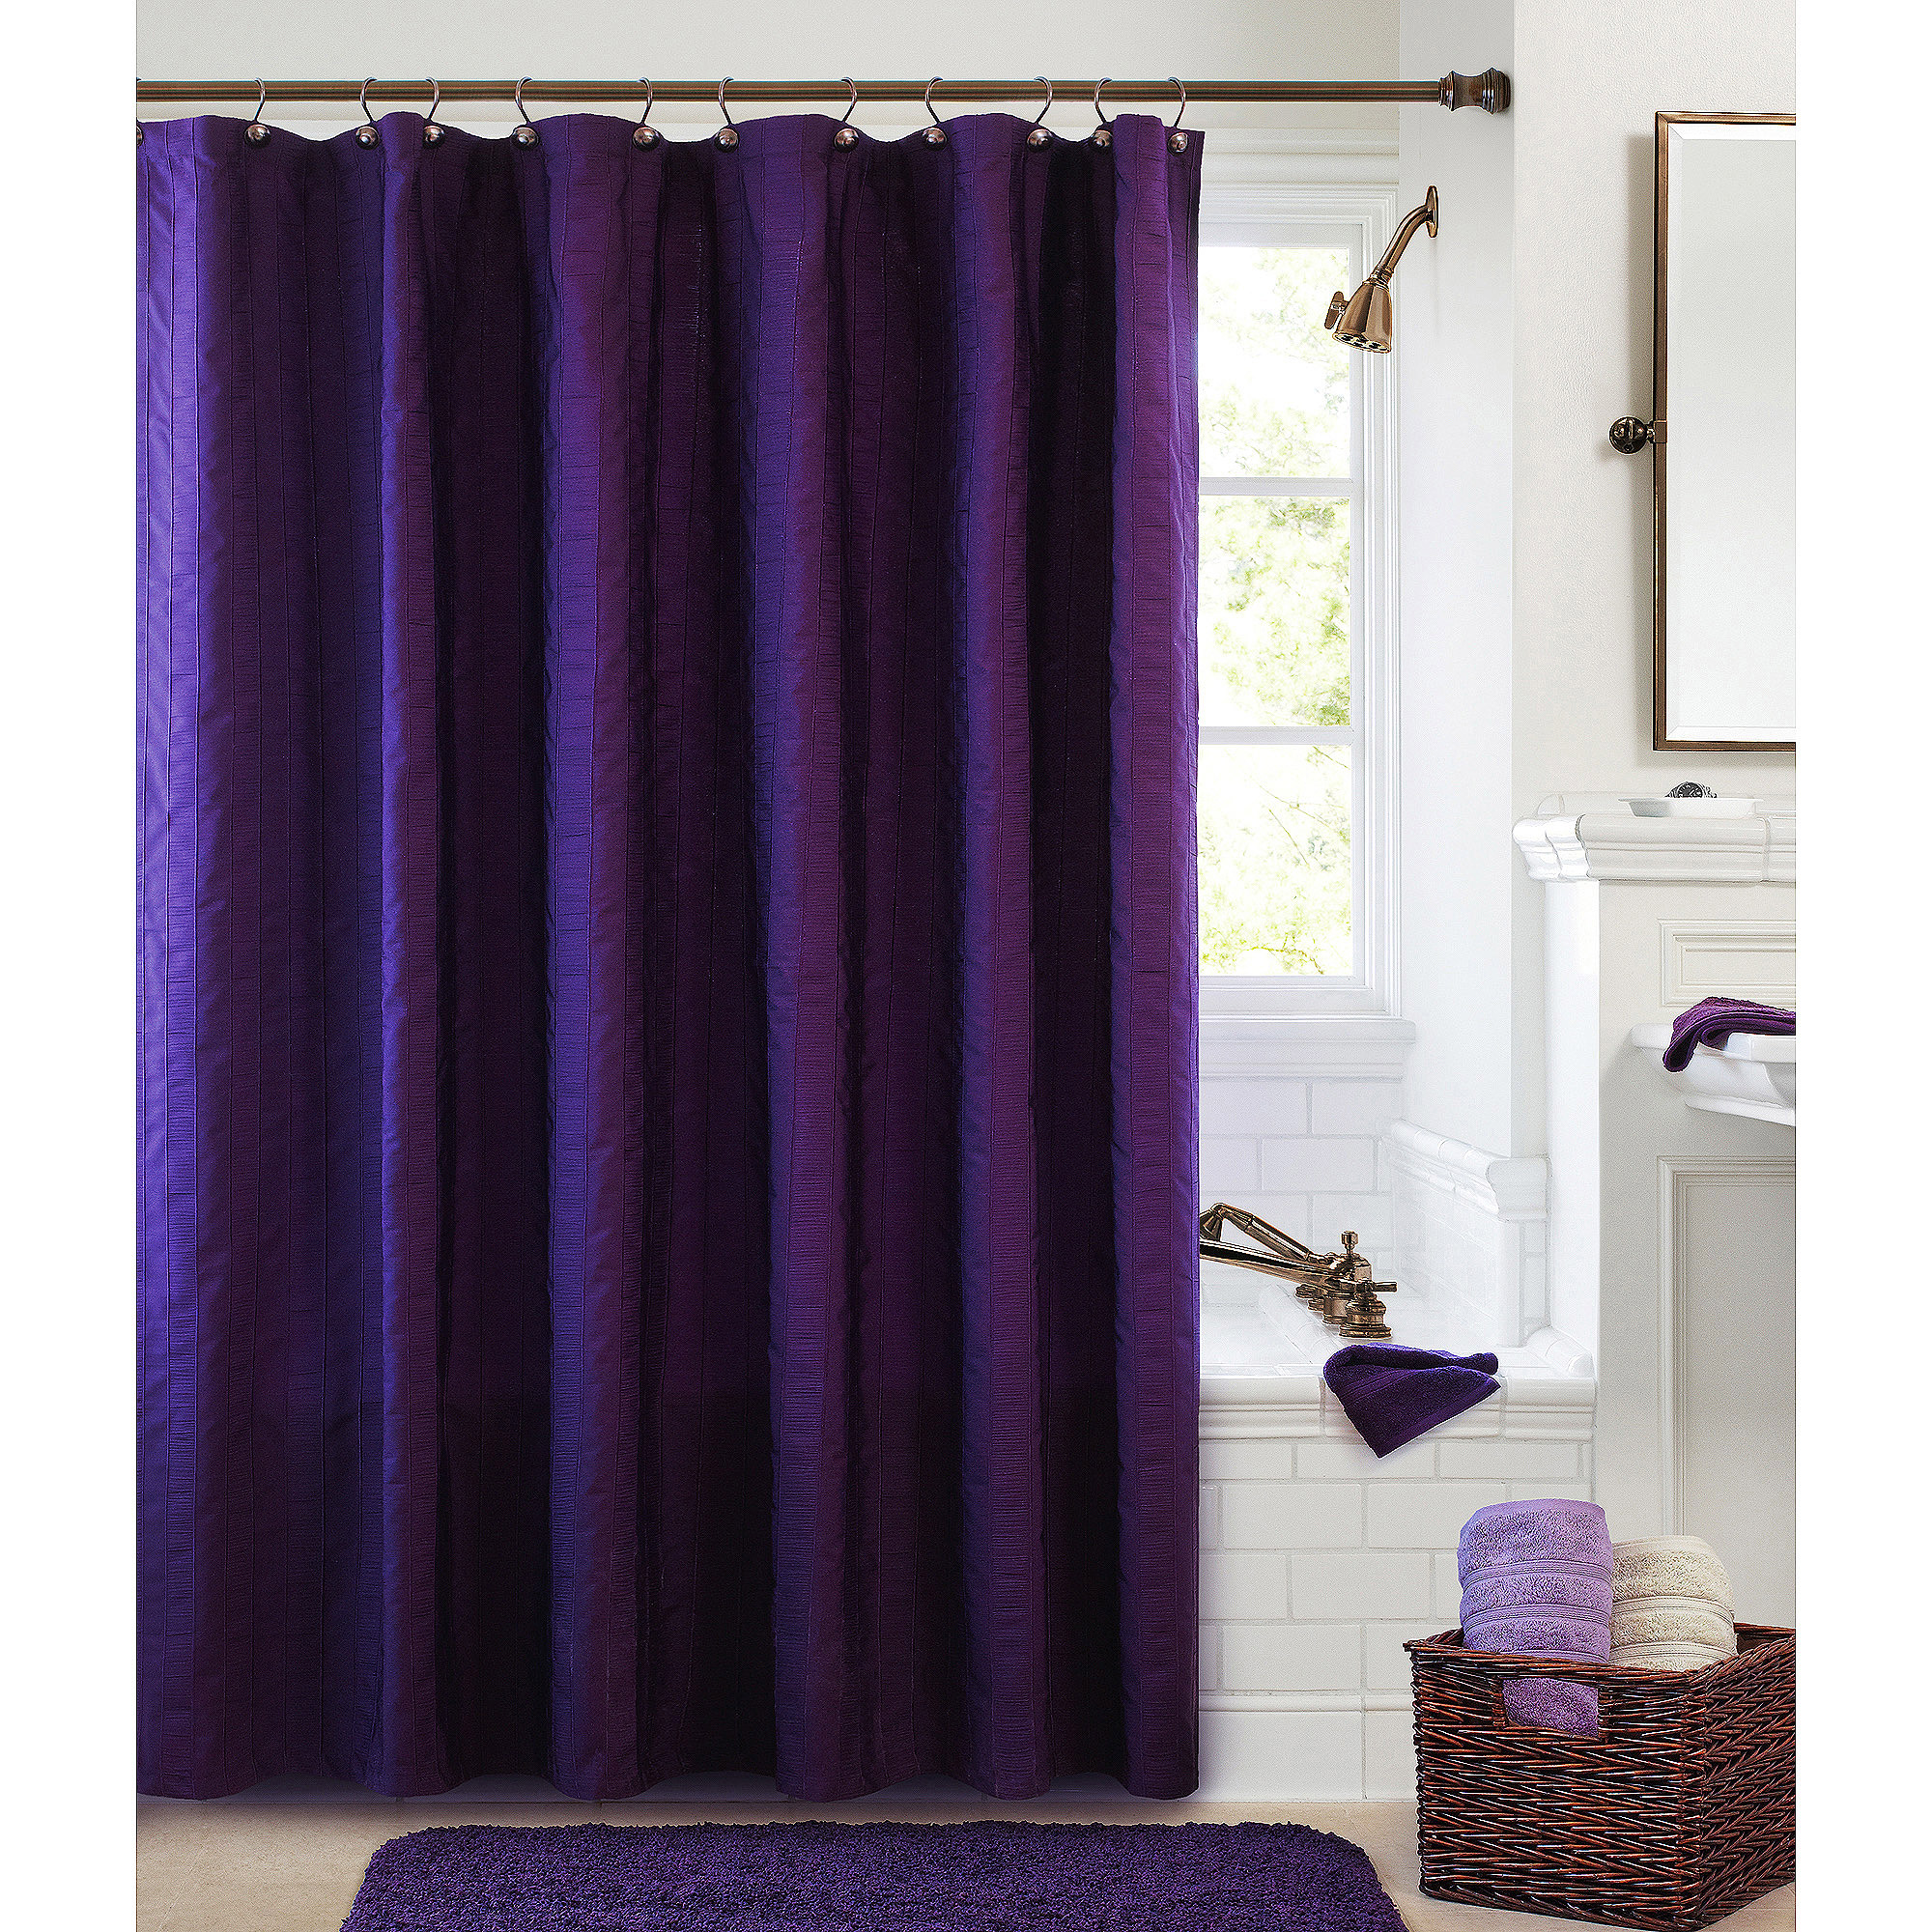 Better Homes and Gardens Chadwell Fabric Shower Curtain Collection